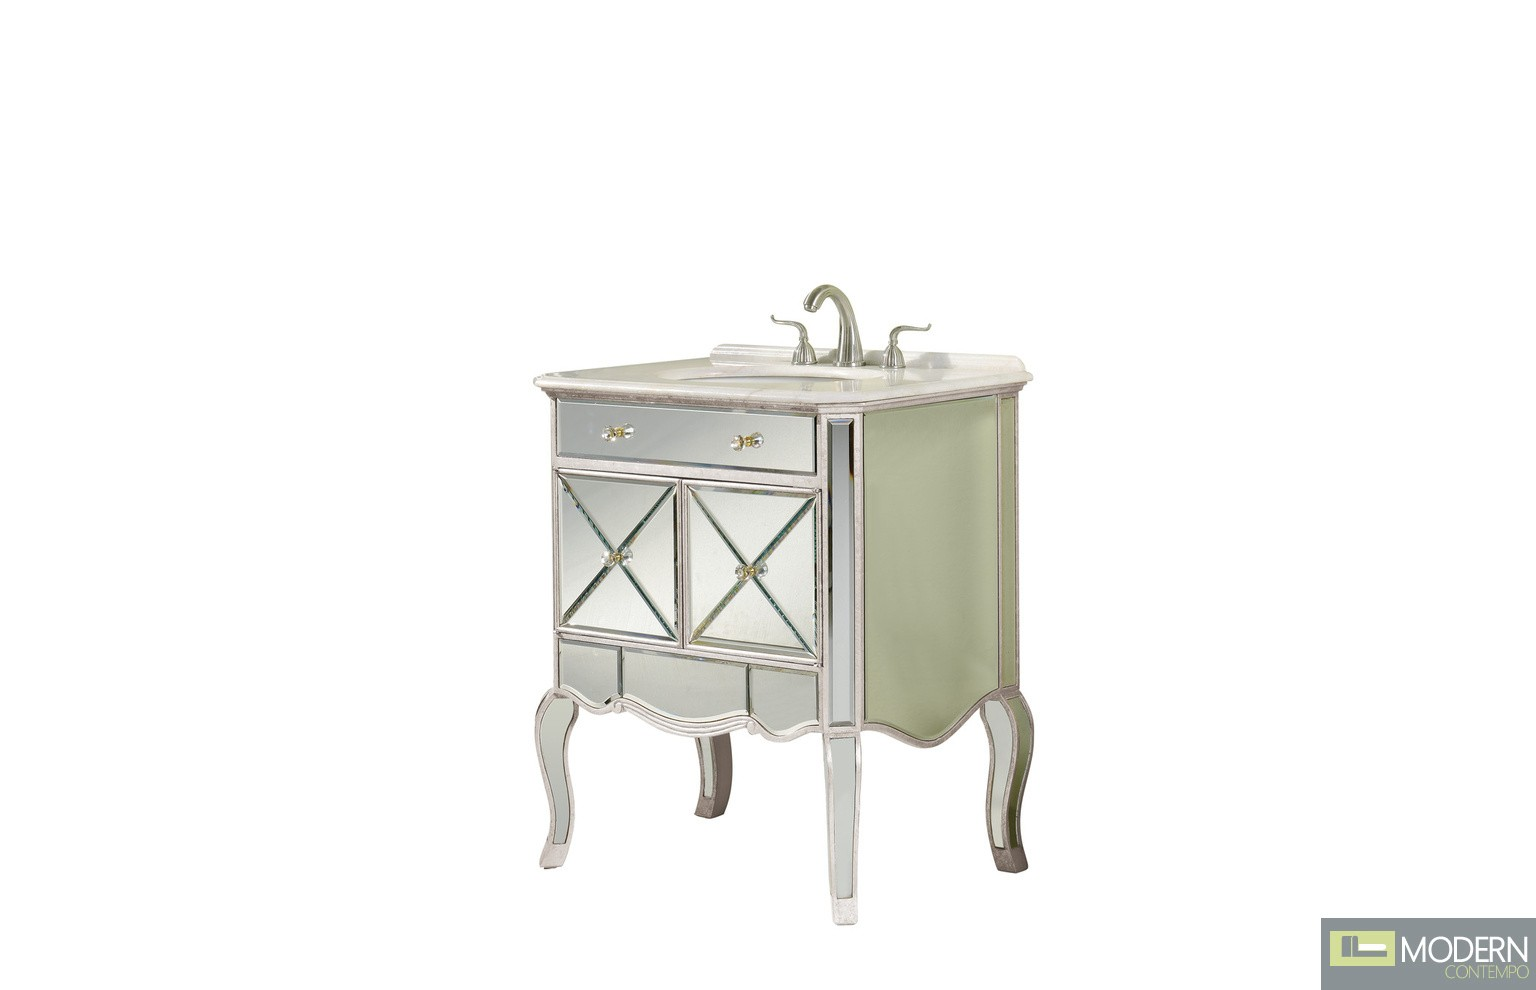 Beveled Clear Mirror  2 doors vanity cabinet 30 in. x 21 in. x 36 in. in Hand Painted Silver Leaf